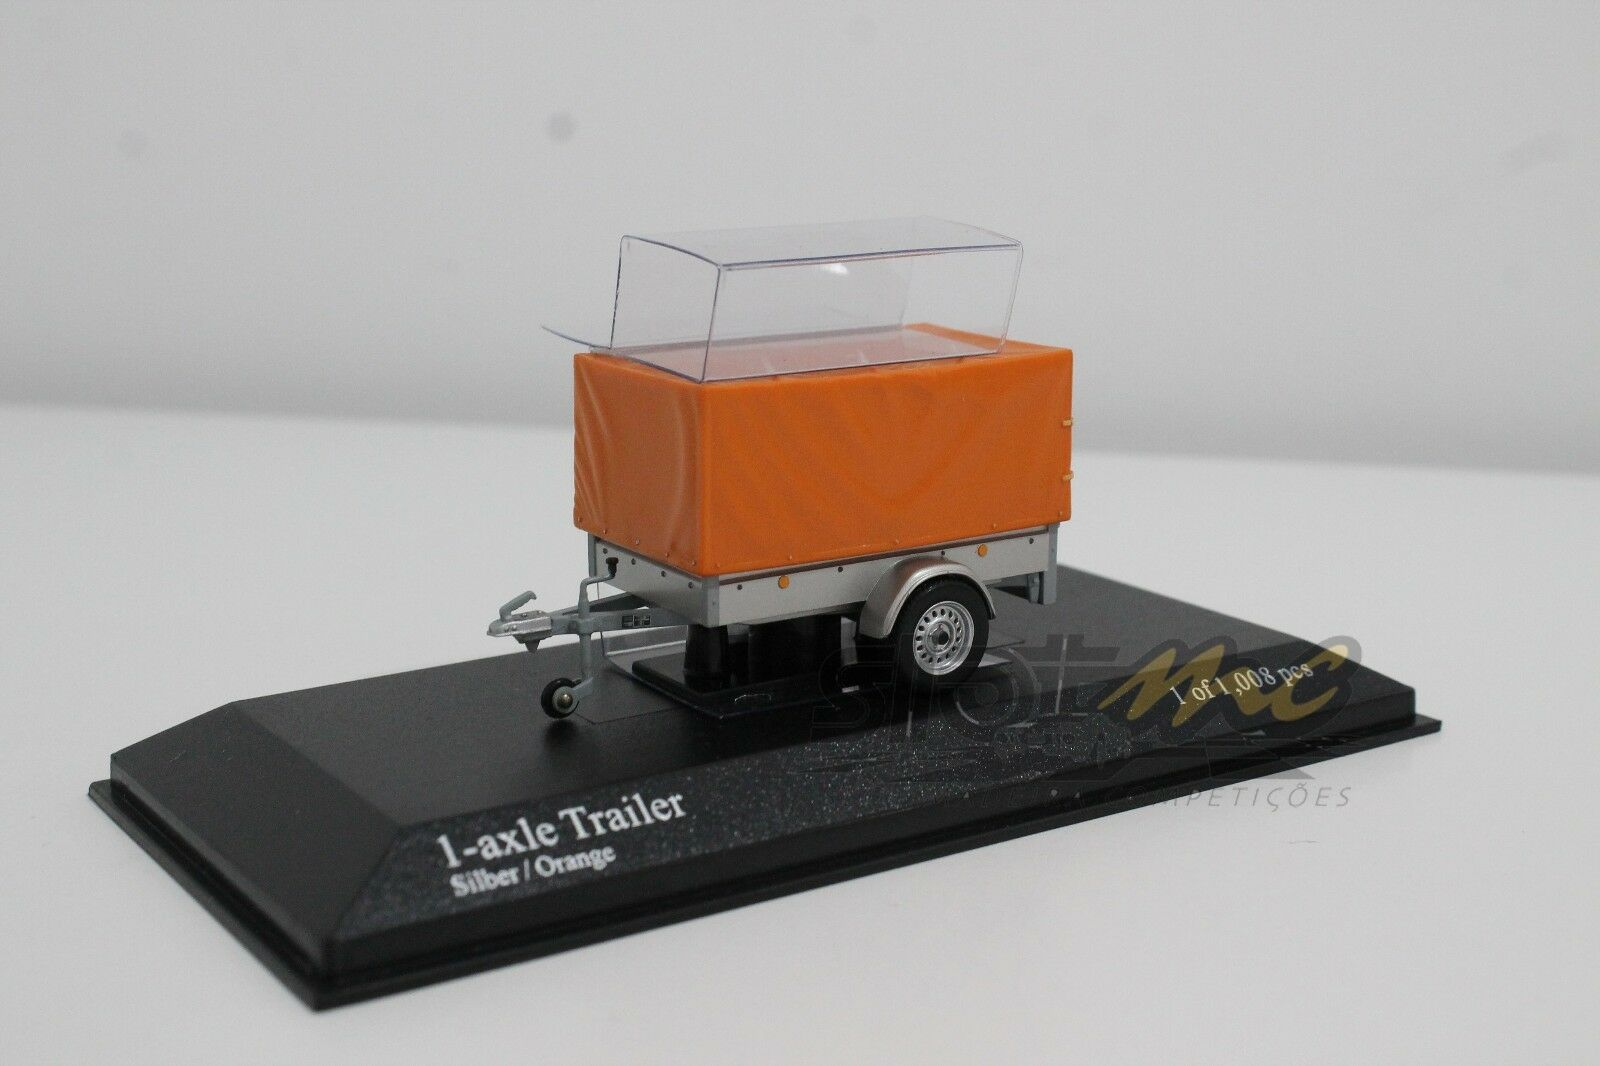 MINICHAMPS 400905221 1-axie trailer w  canvas Silver orange 1 43  NEW